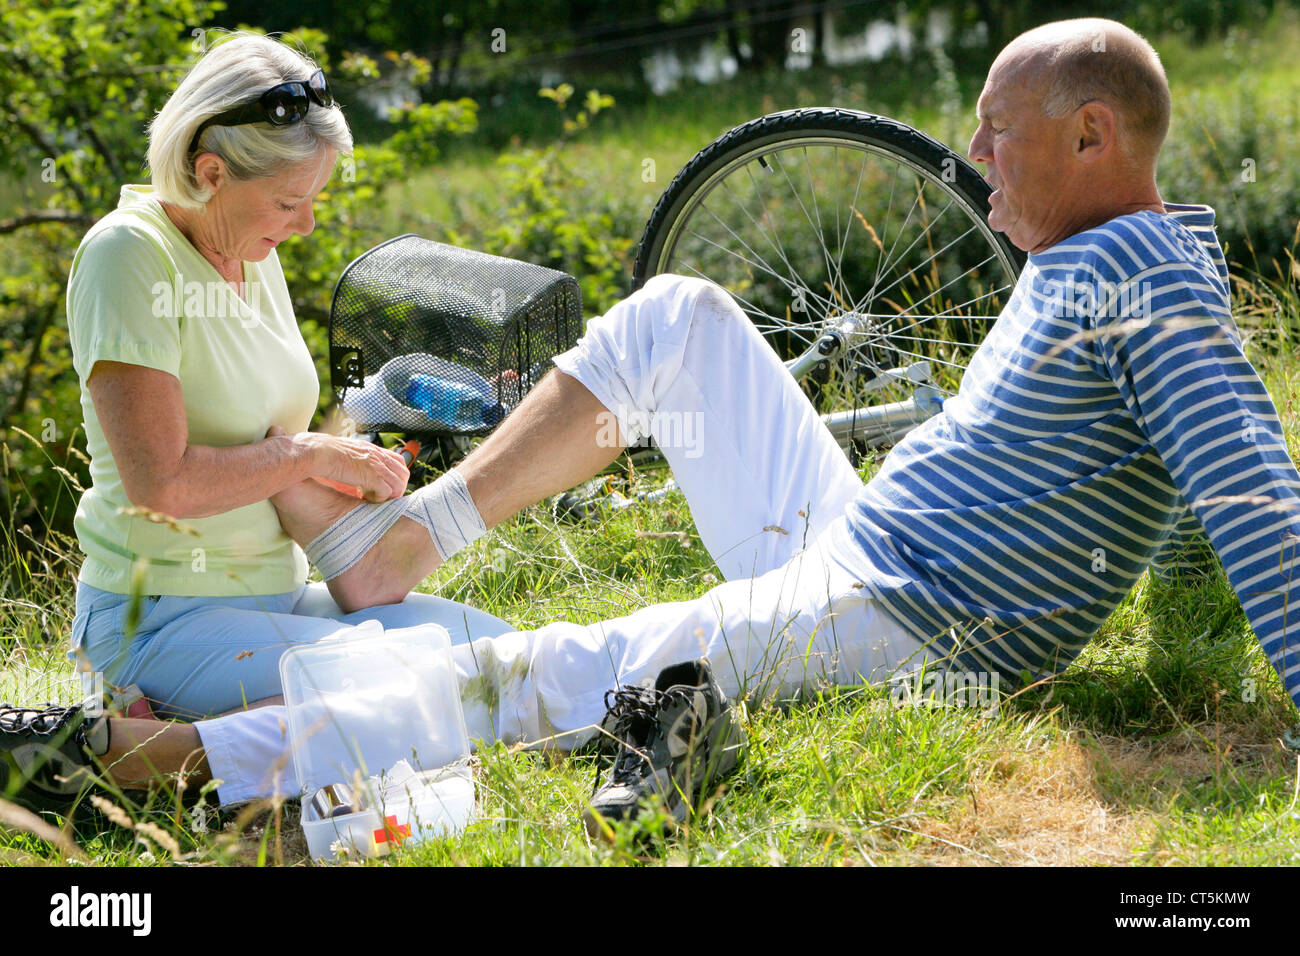 ELDERLY P. WITH SPRAINED ANKLE - Stock Image